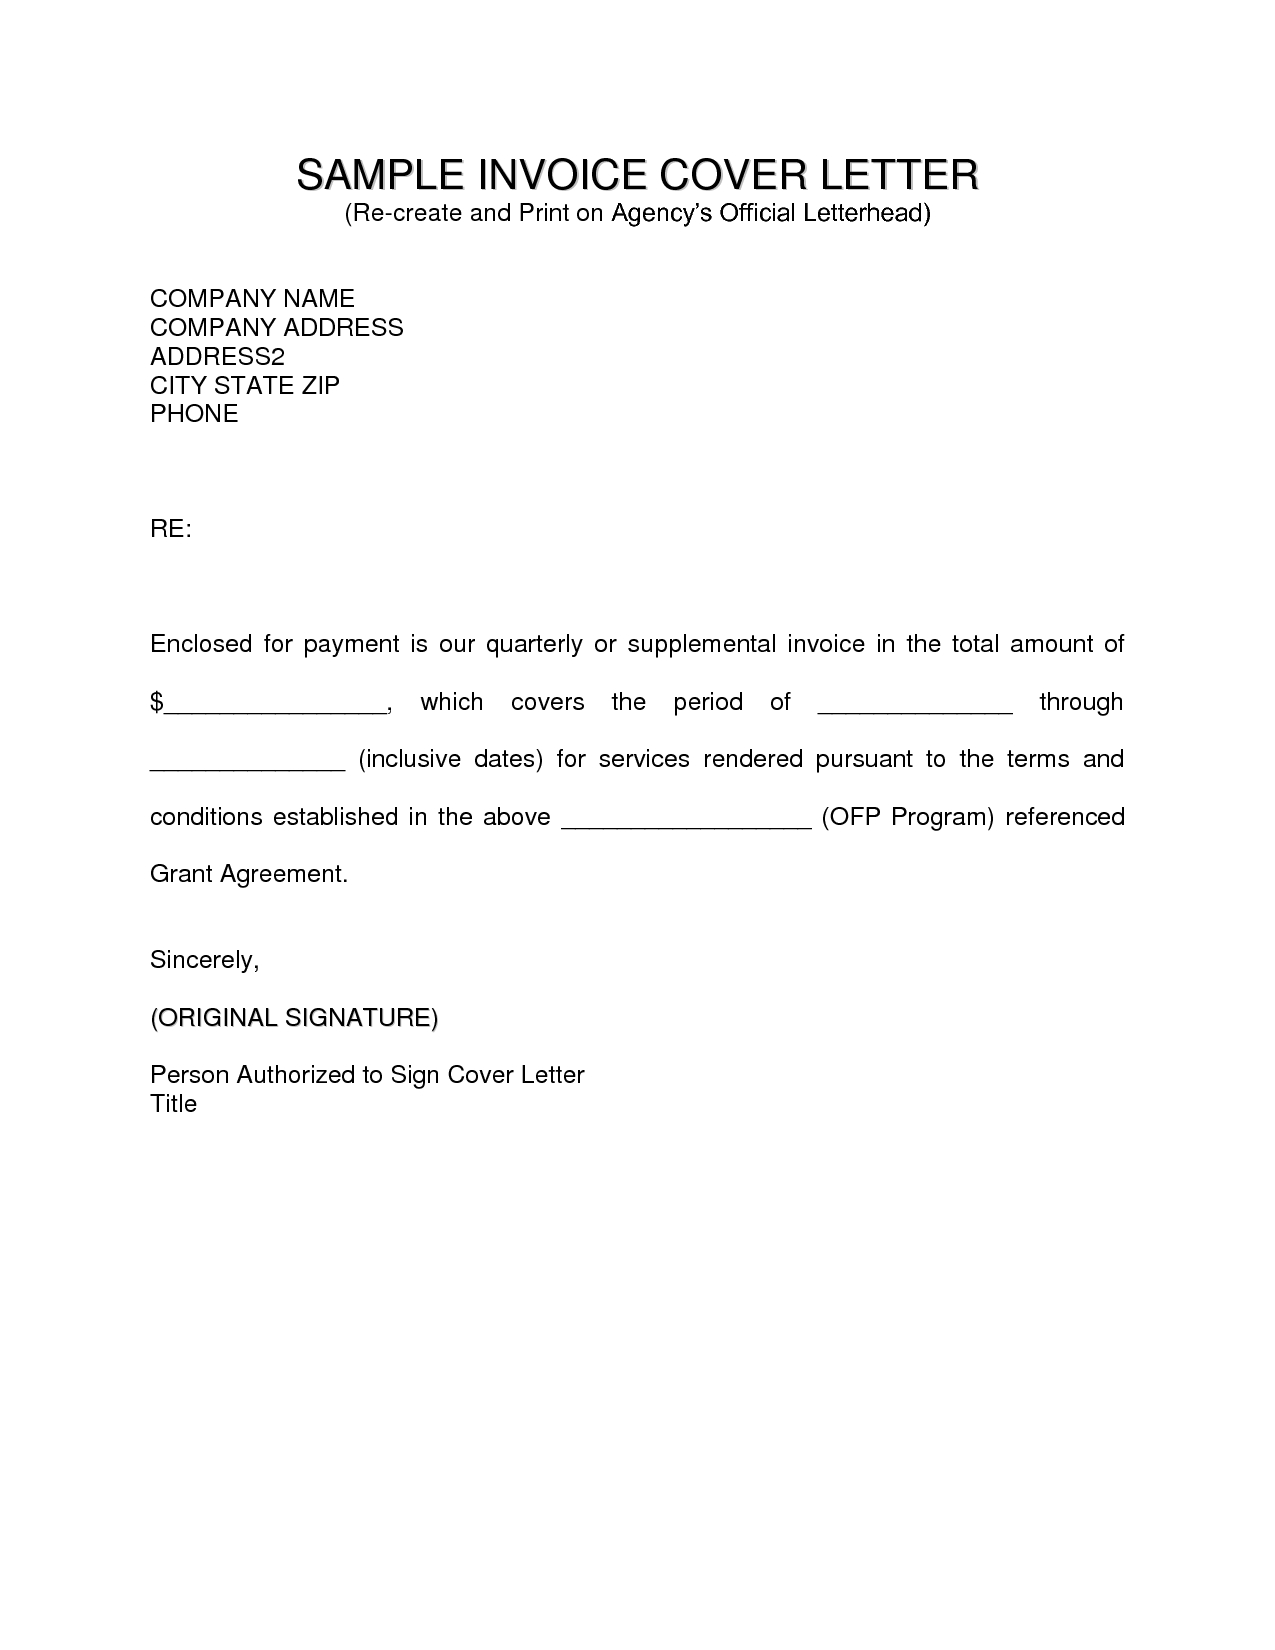 writer cover letter gallery photos example of invoice letter